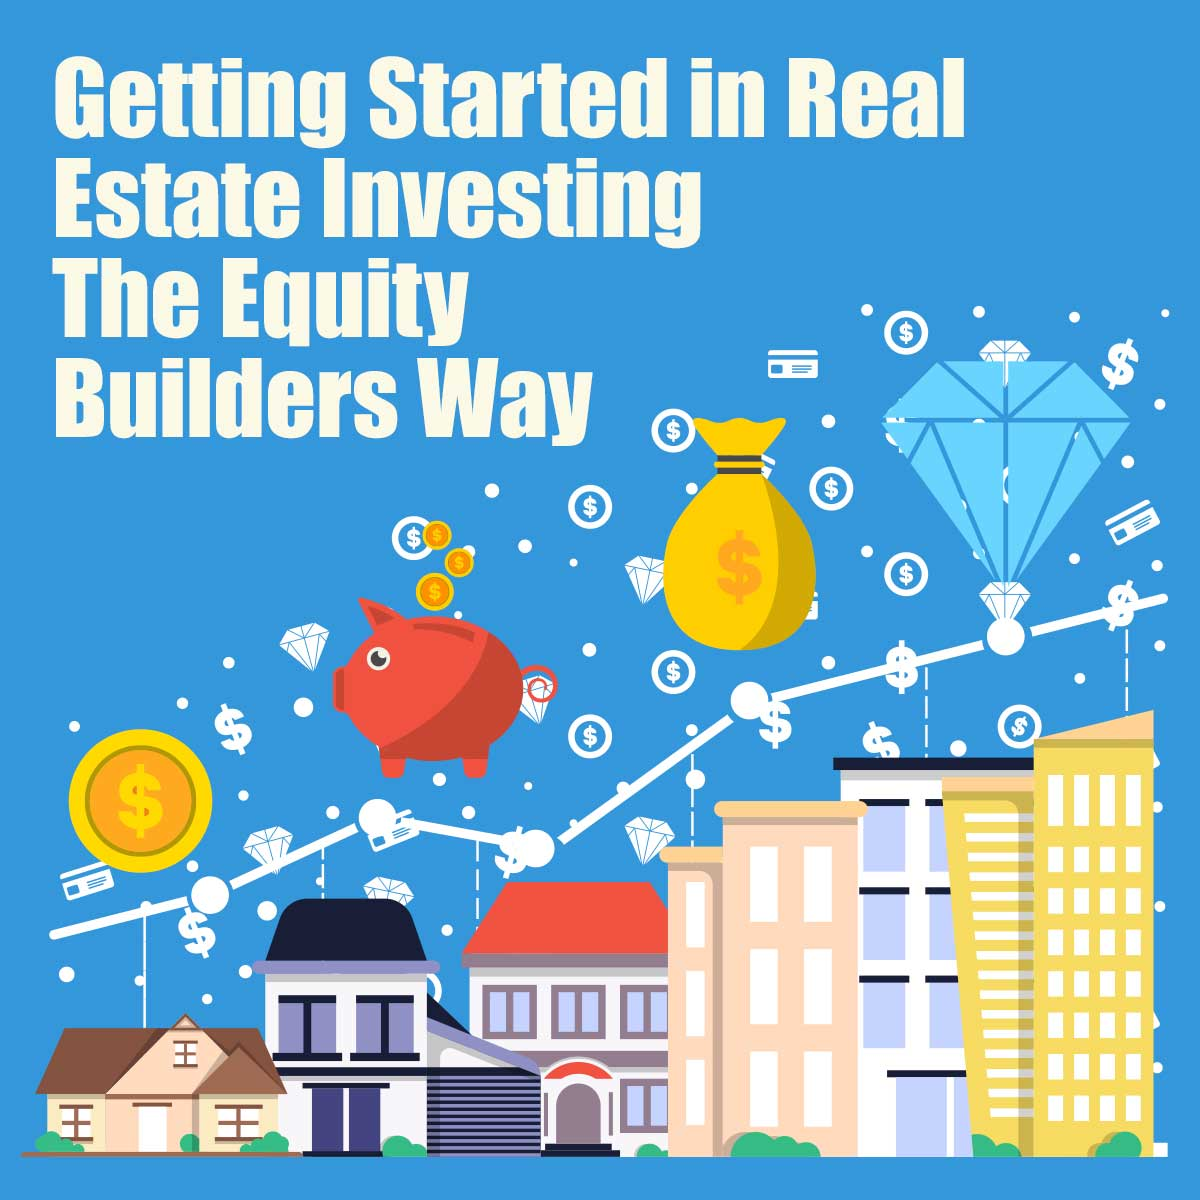 "Getting Started in Real Estate Investing The Equity Builders Way... Getting started in real estate investing can be confusing and frustrating. It seems like everyone knows more than you and wants to prove it by making you feel dumb. On the other hand, we love working with new real estate investors, showing them the ropes and the ""right"" way to judge properties and investments!"